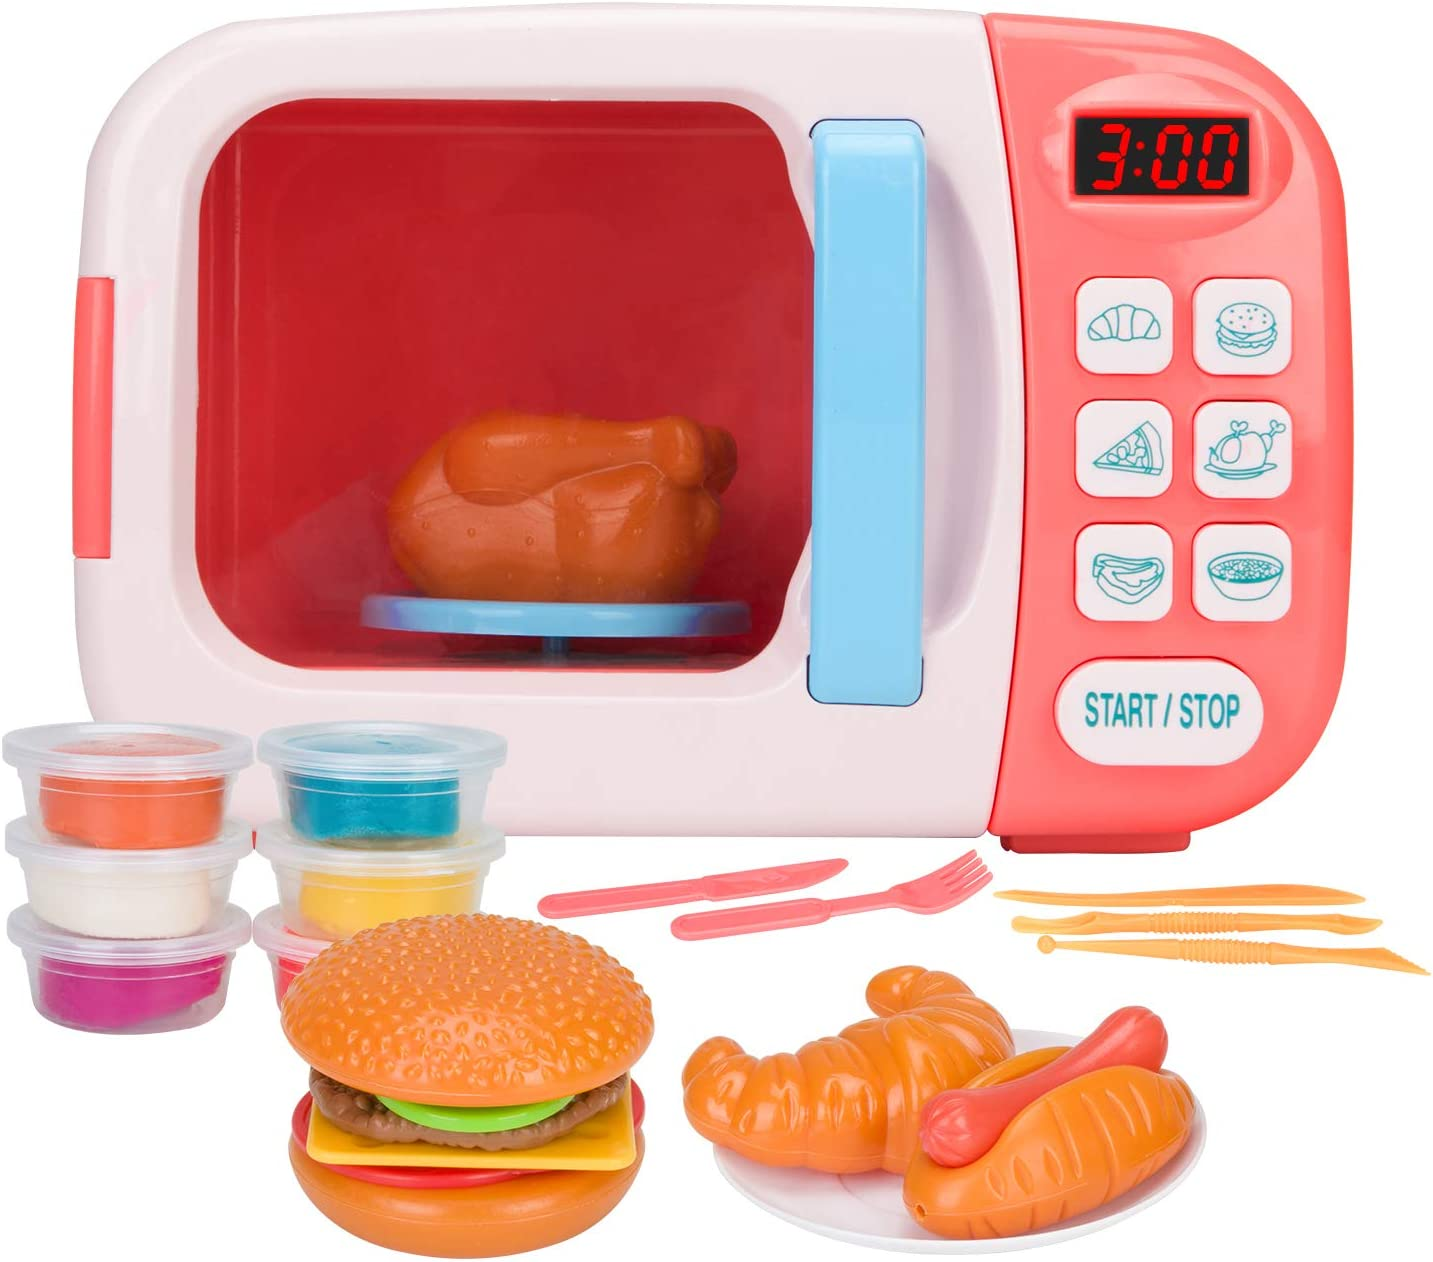 Vazussk Electronic Kitchen Toys Pretend Microwave Oven Play Set for Kids Toddlers Age 3 and up with 6Pcs Play Dough (Pink)